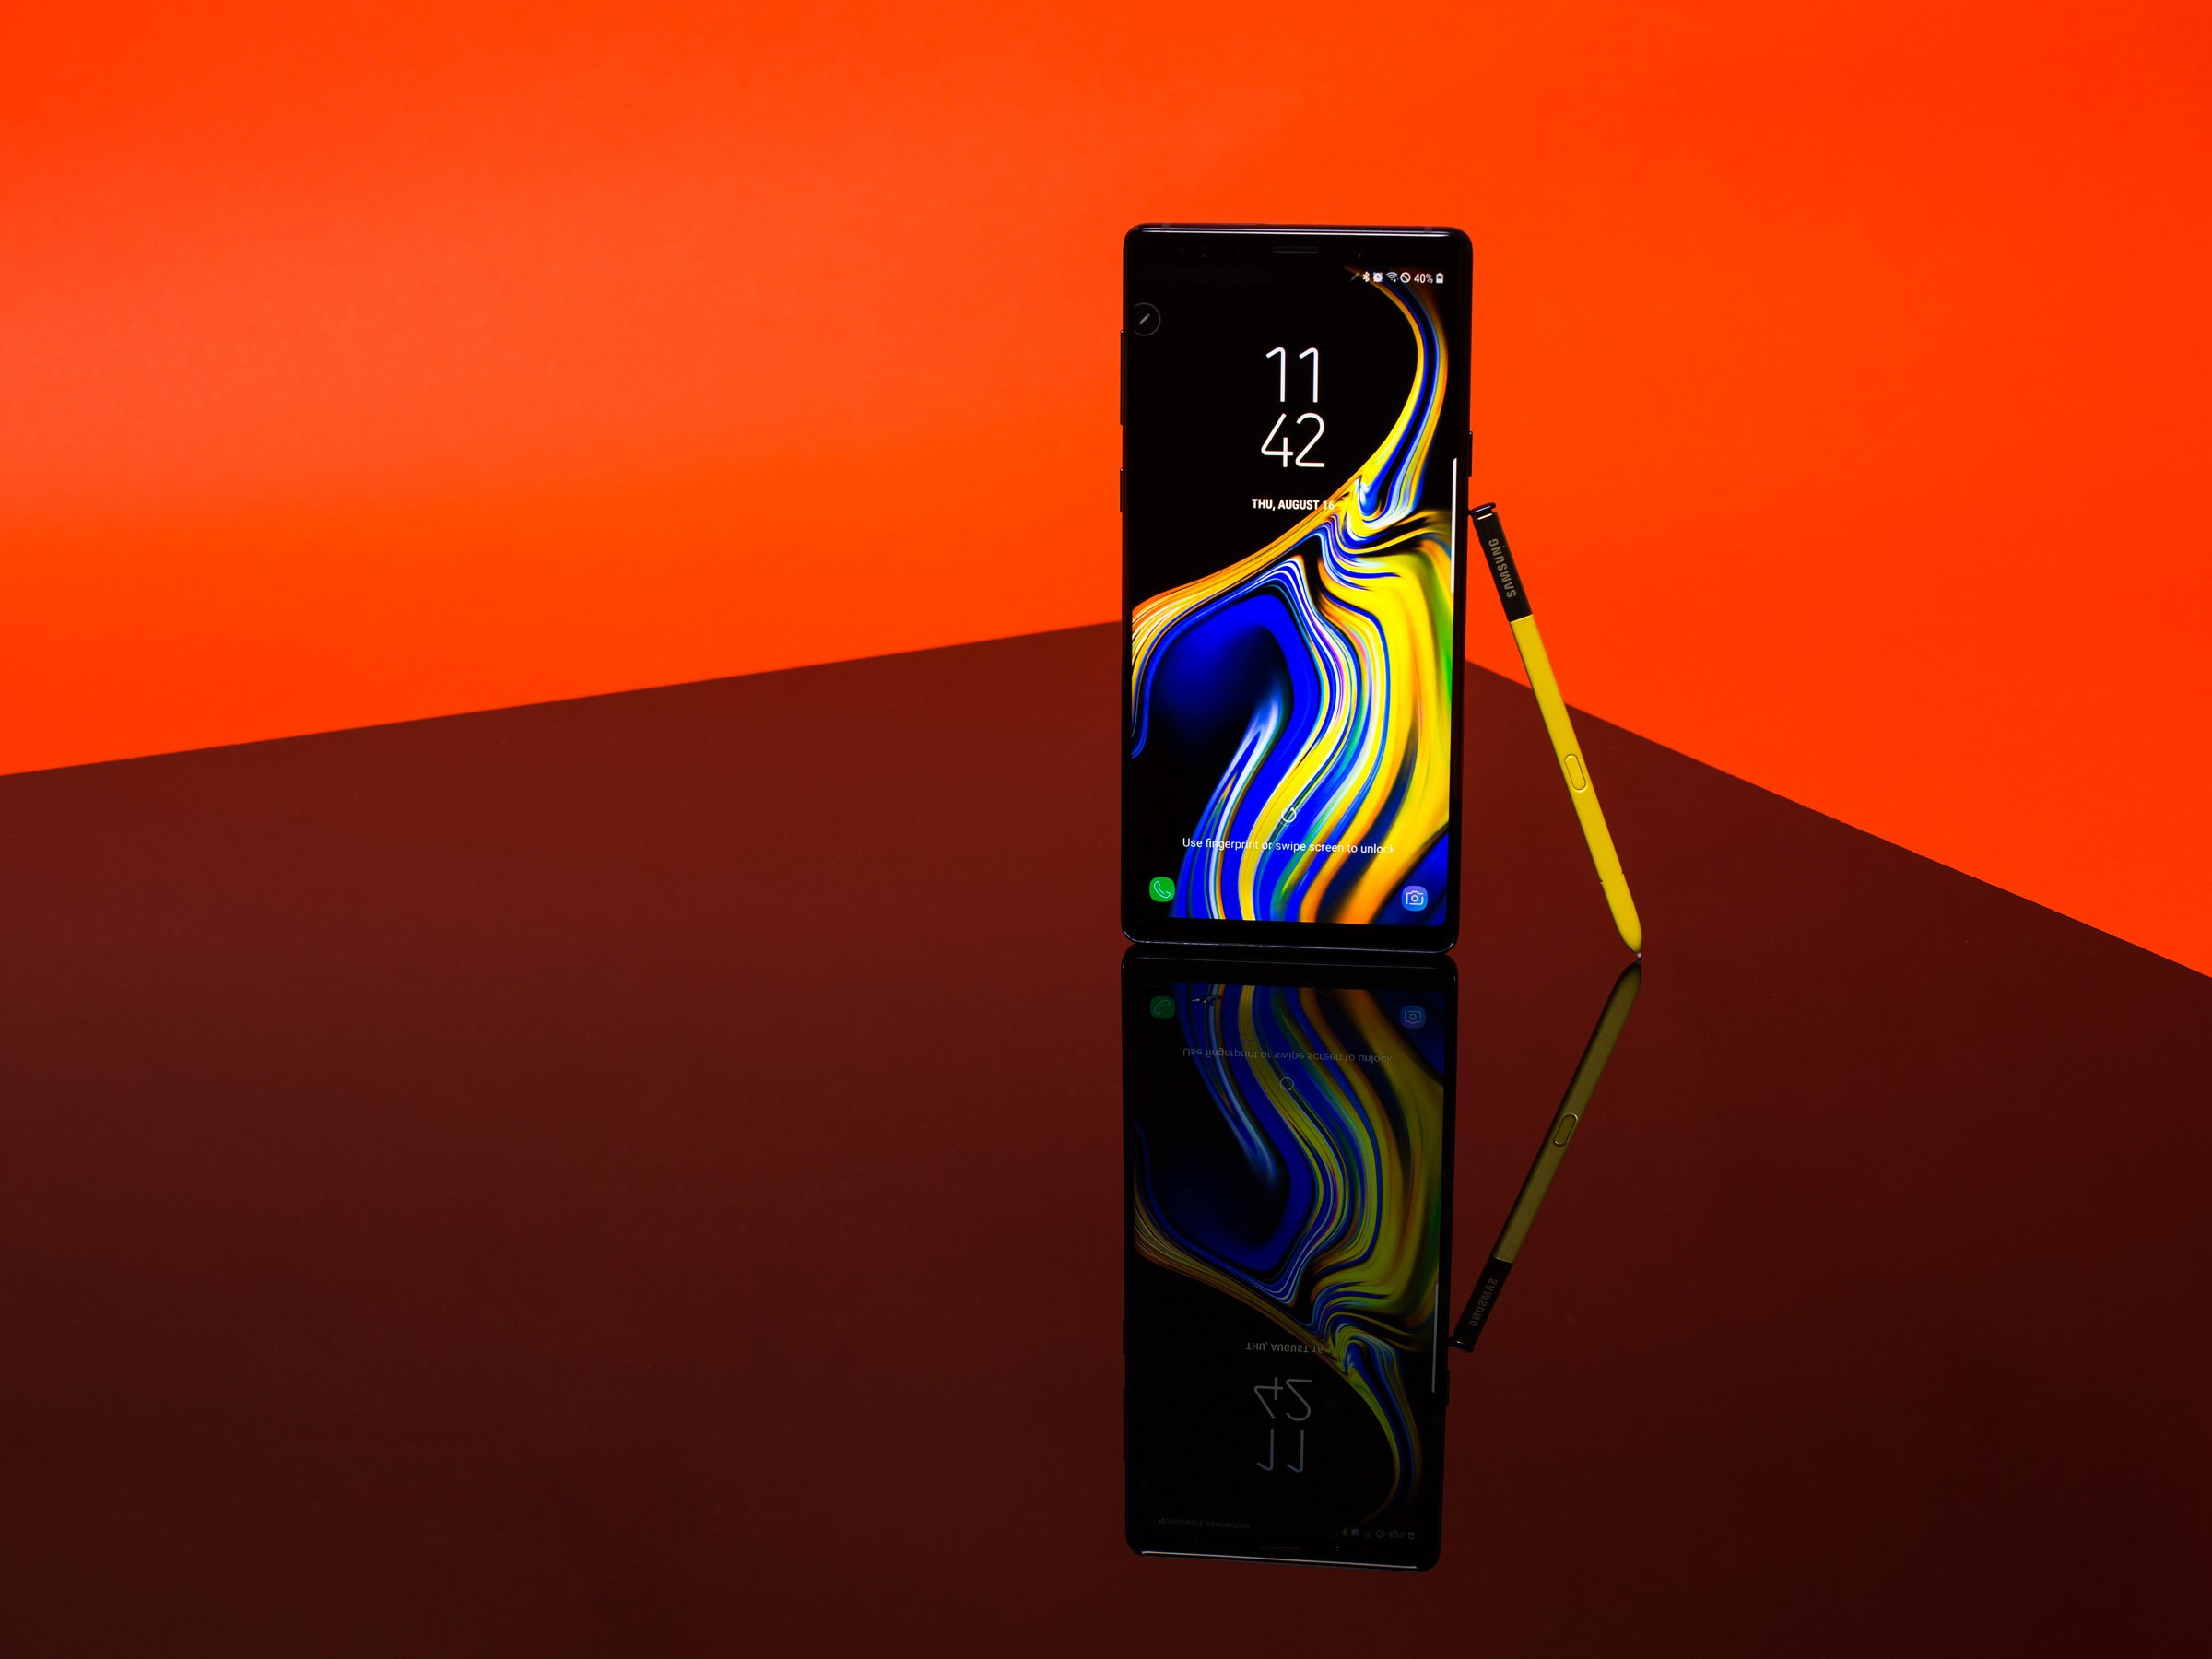 galaxy note 9 vs Note 10 comparison